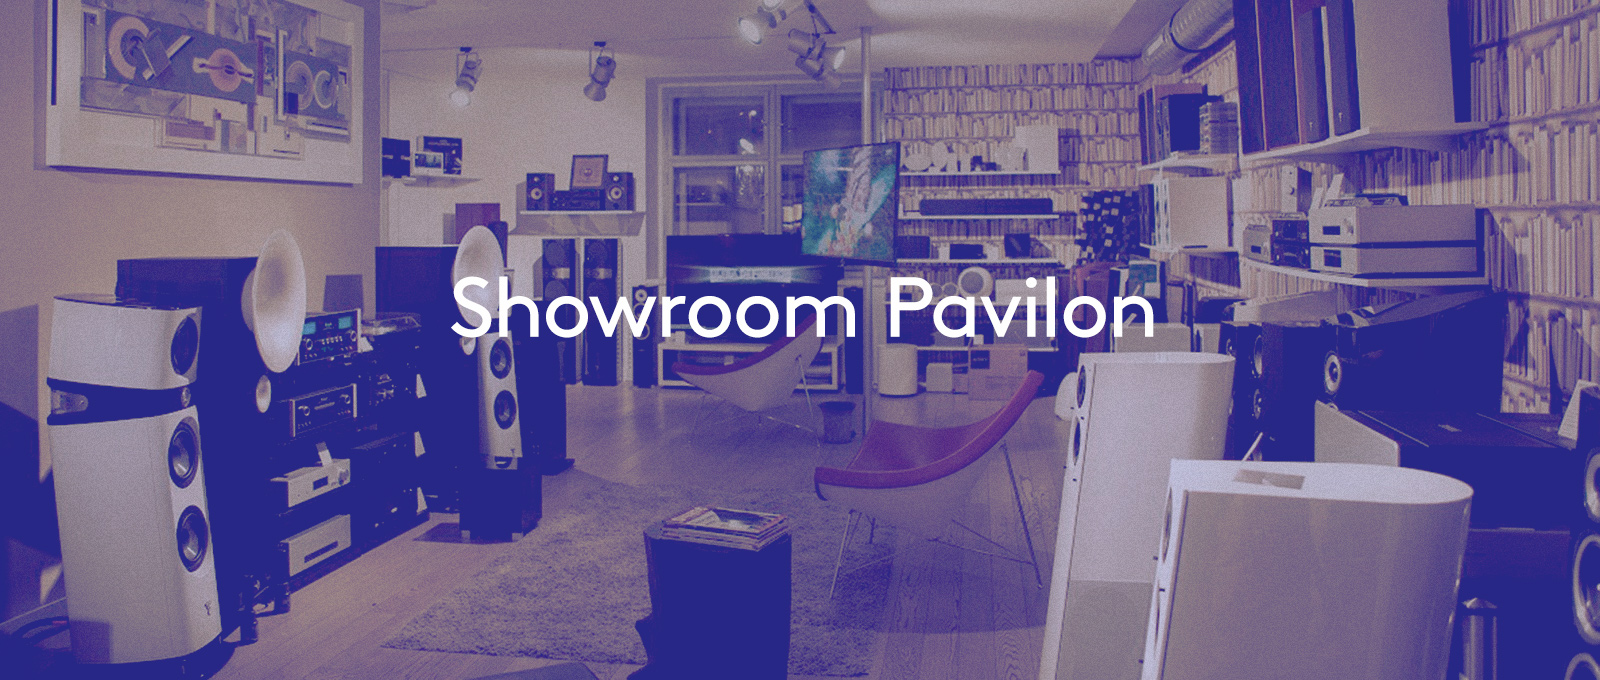 showroom-headline